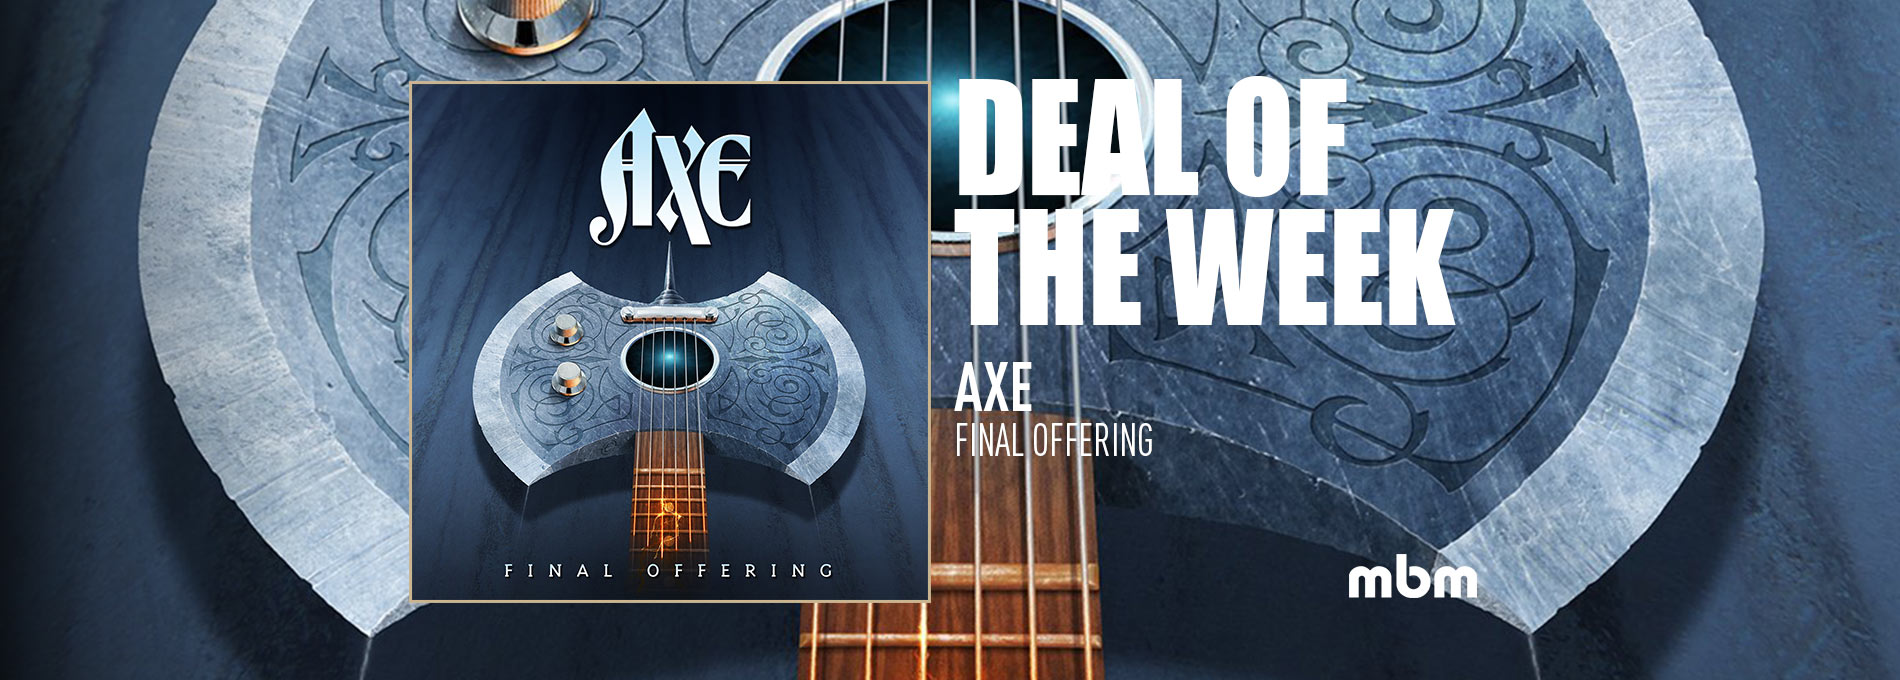 Deal Of The Week: AXE - Final Offering